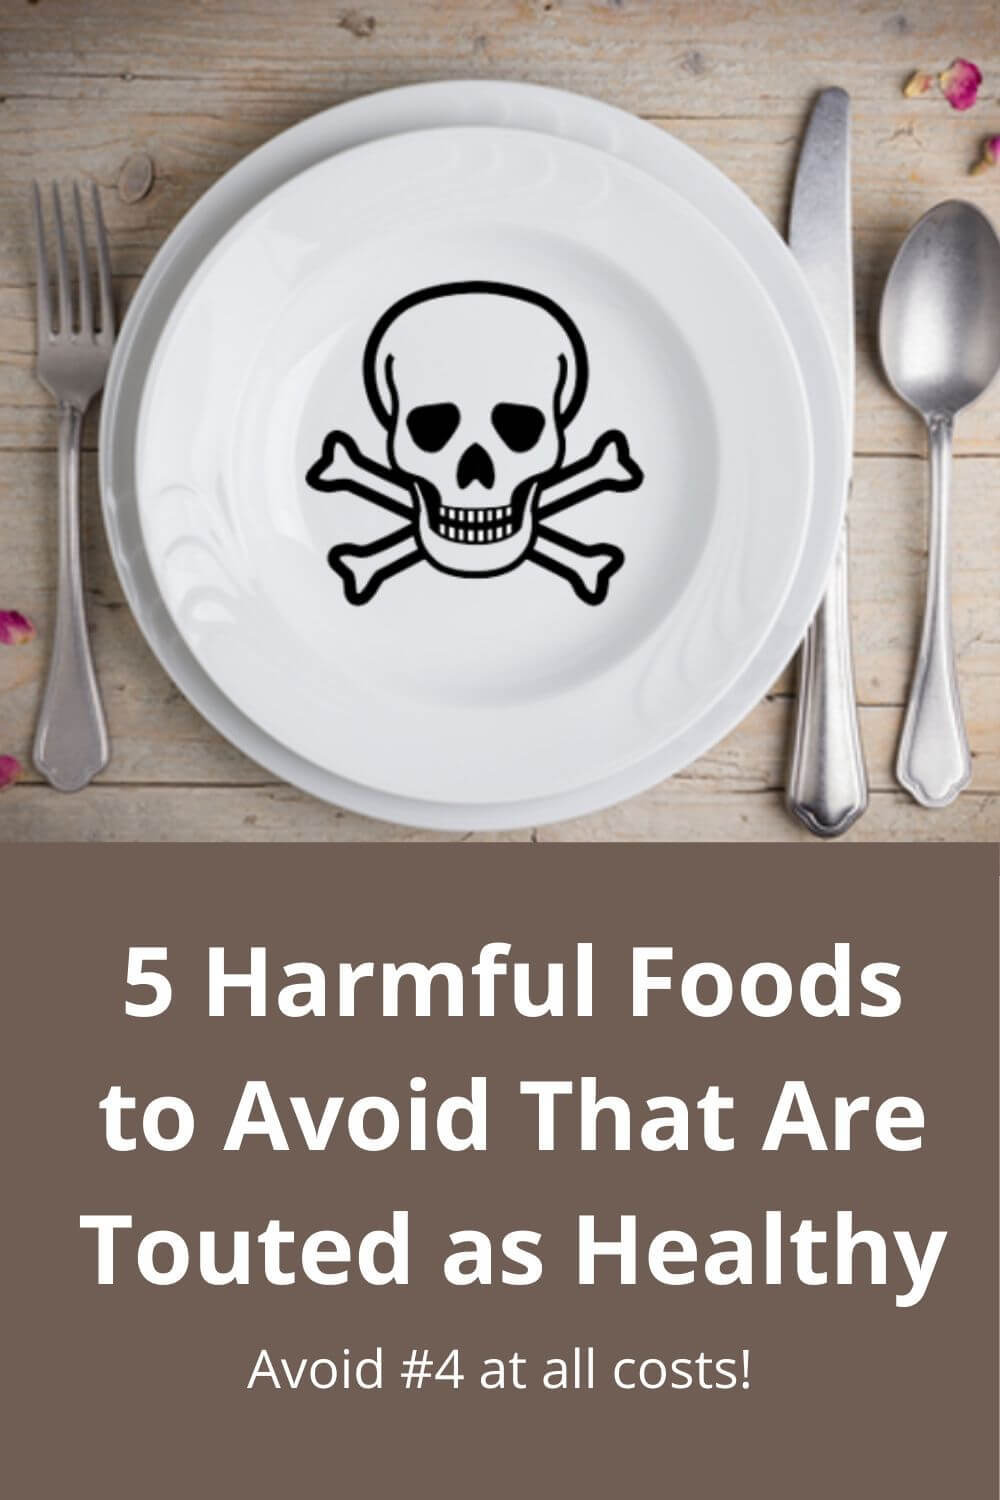 5 Harmful foods to avoid that are touted as healthy